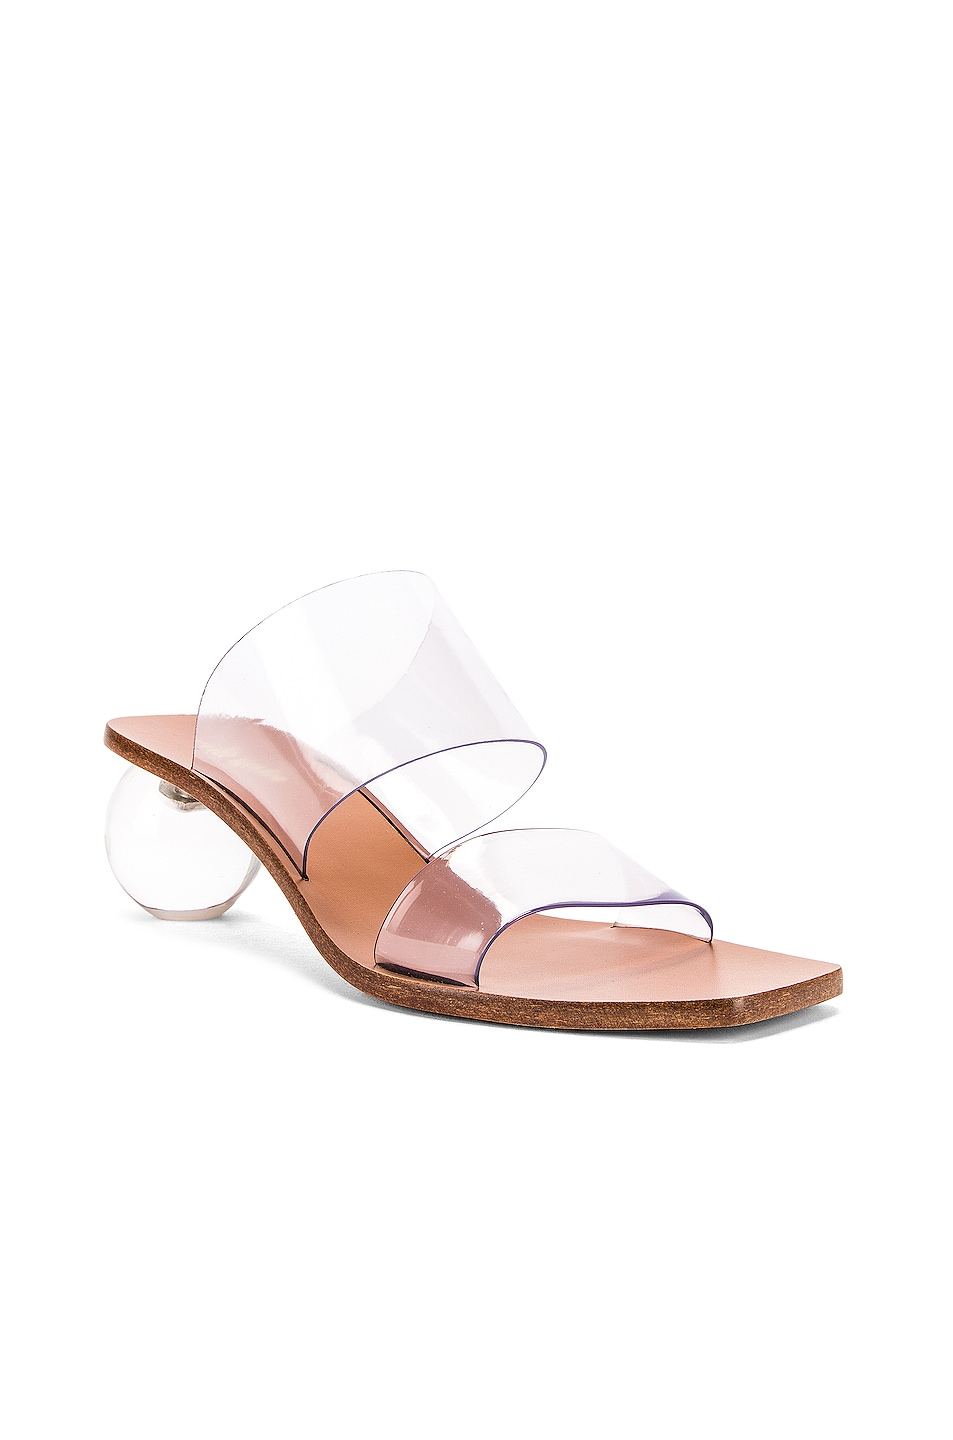 Image 2 of Cult Gaia Jila Sandal in Clear